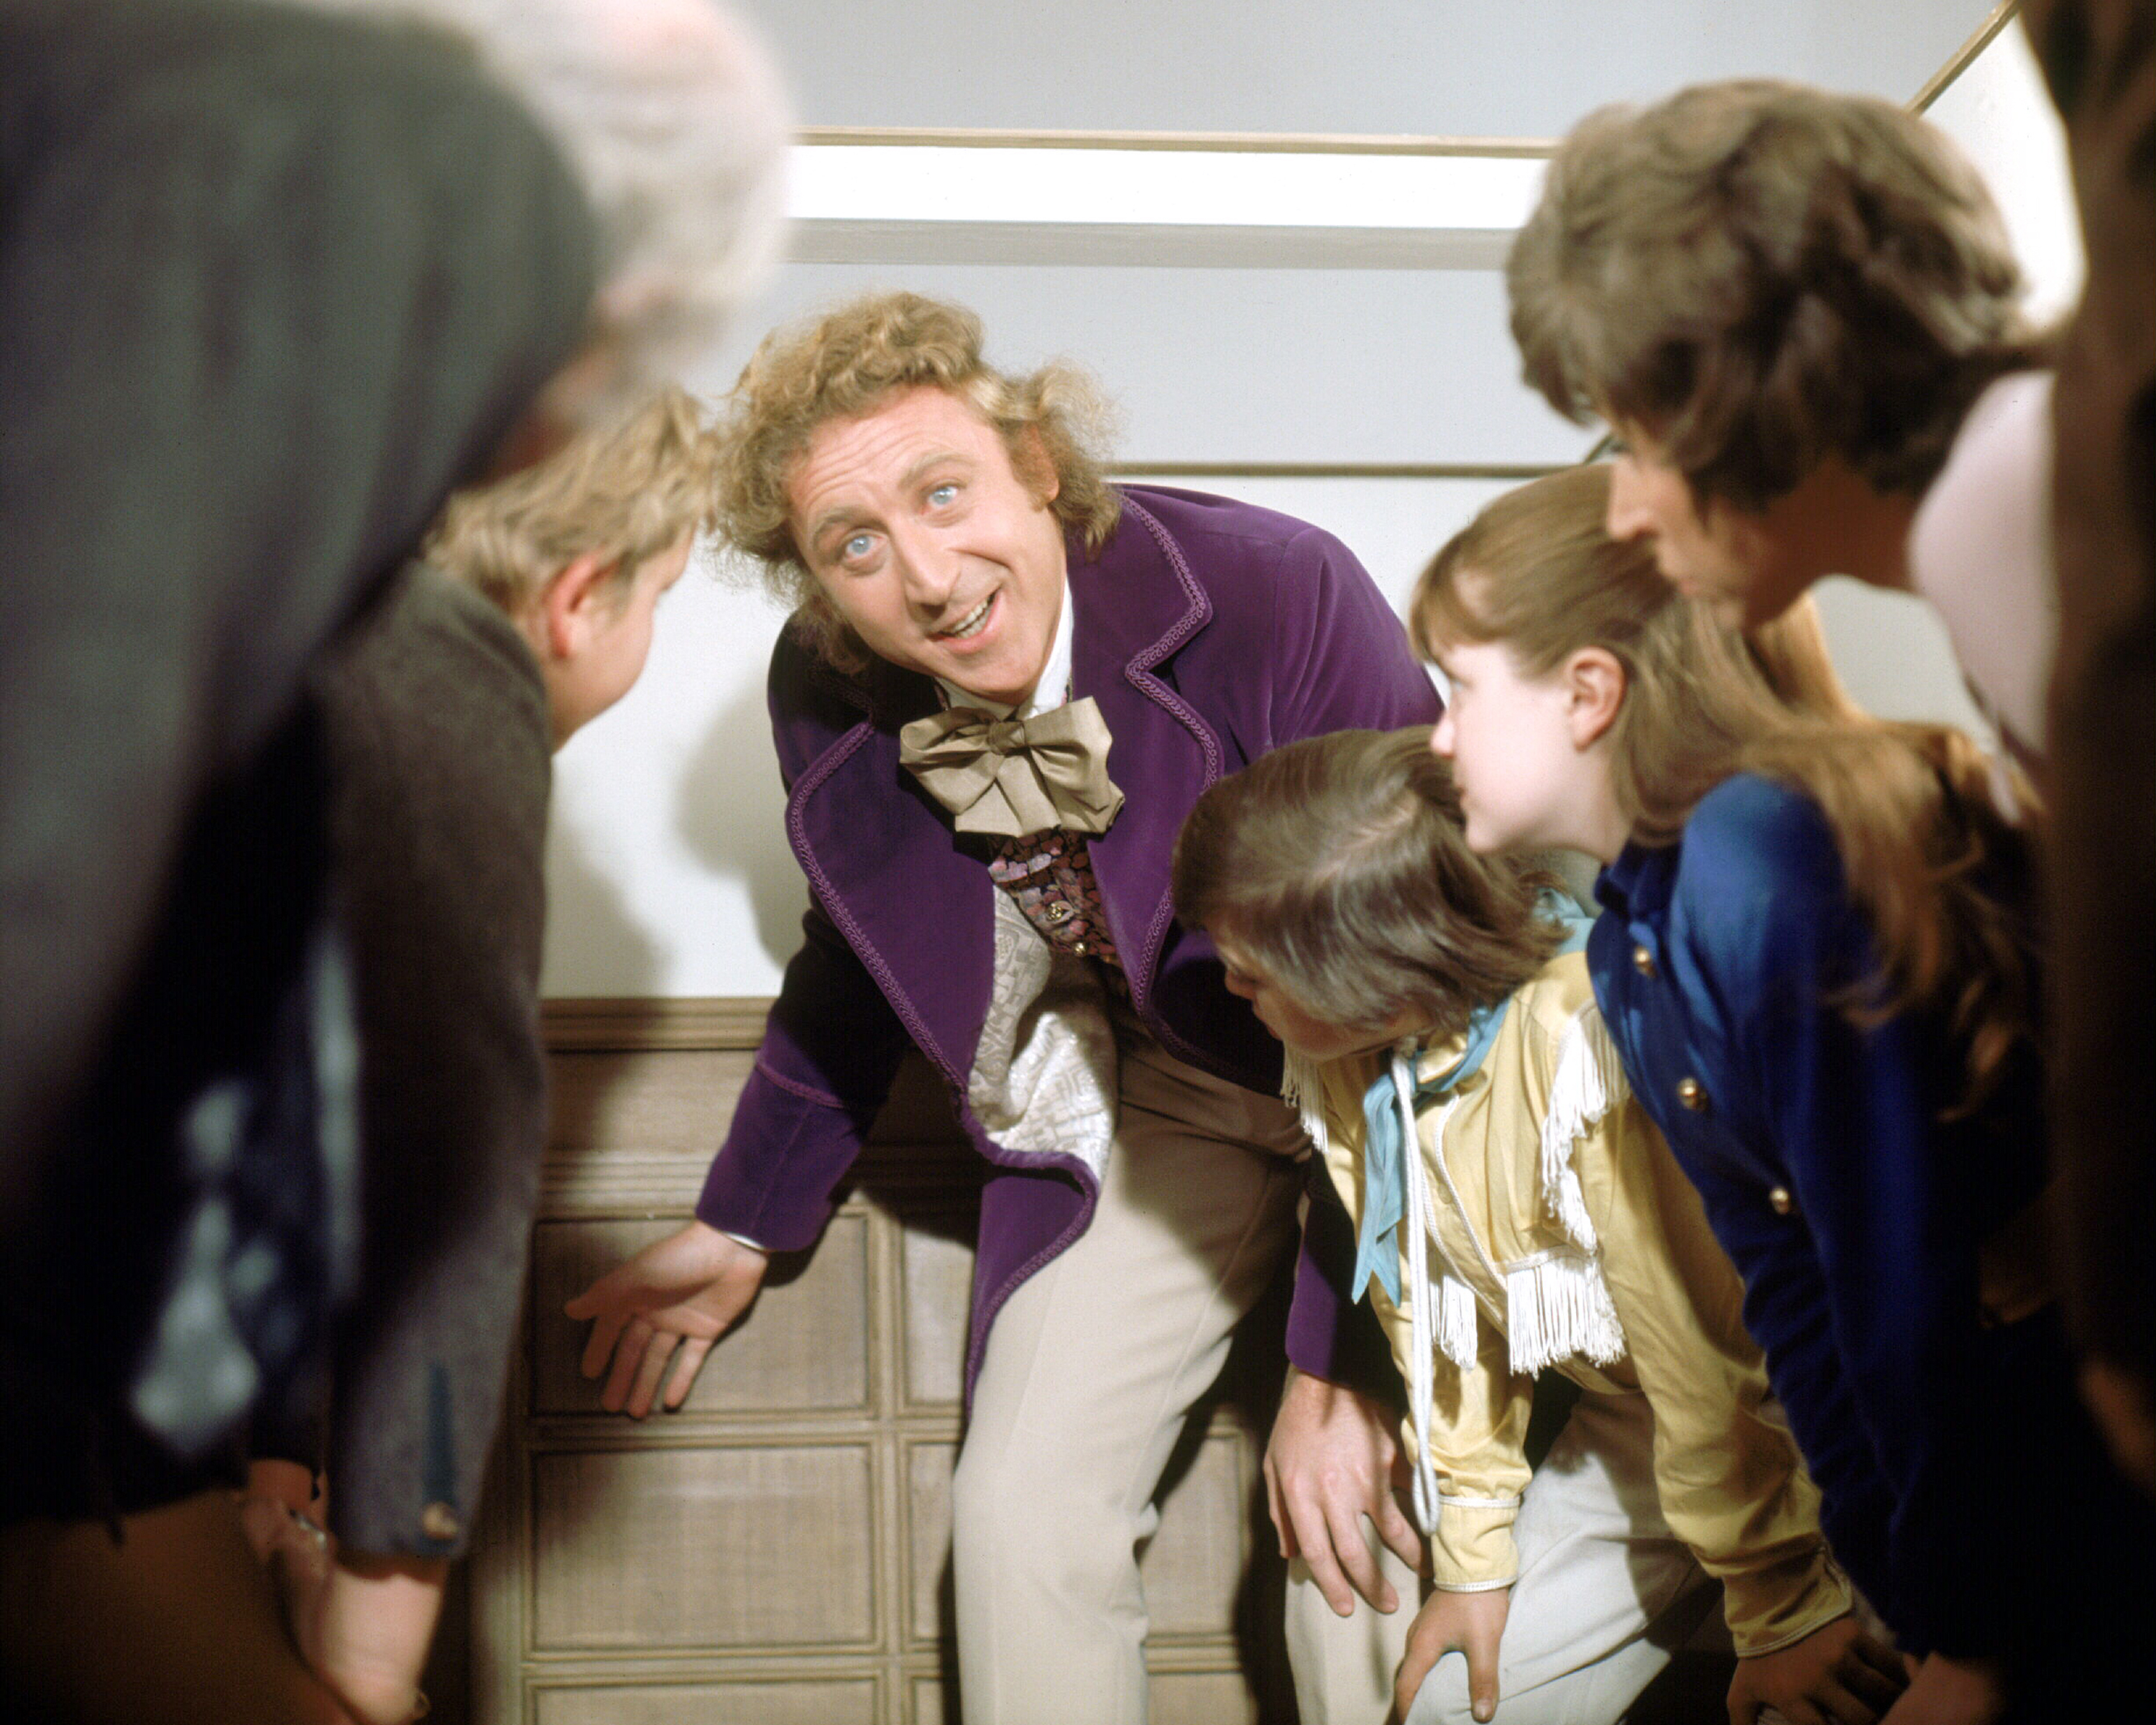 Gene Wilder - Willy Wonka 6